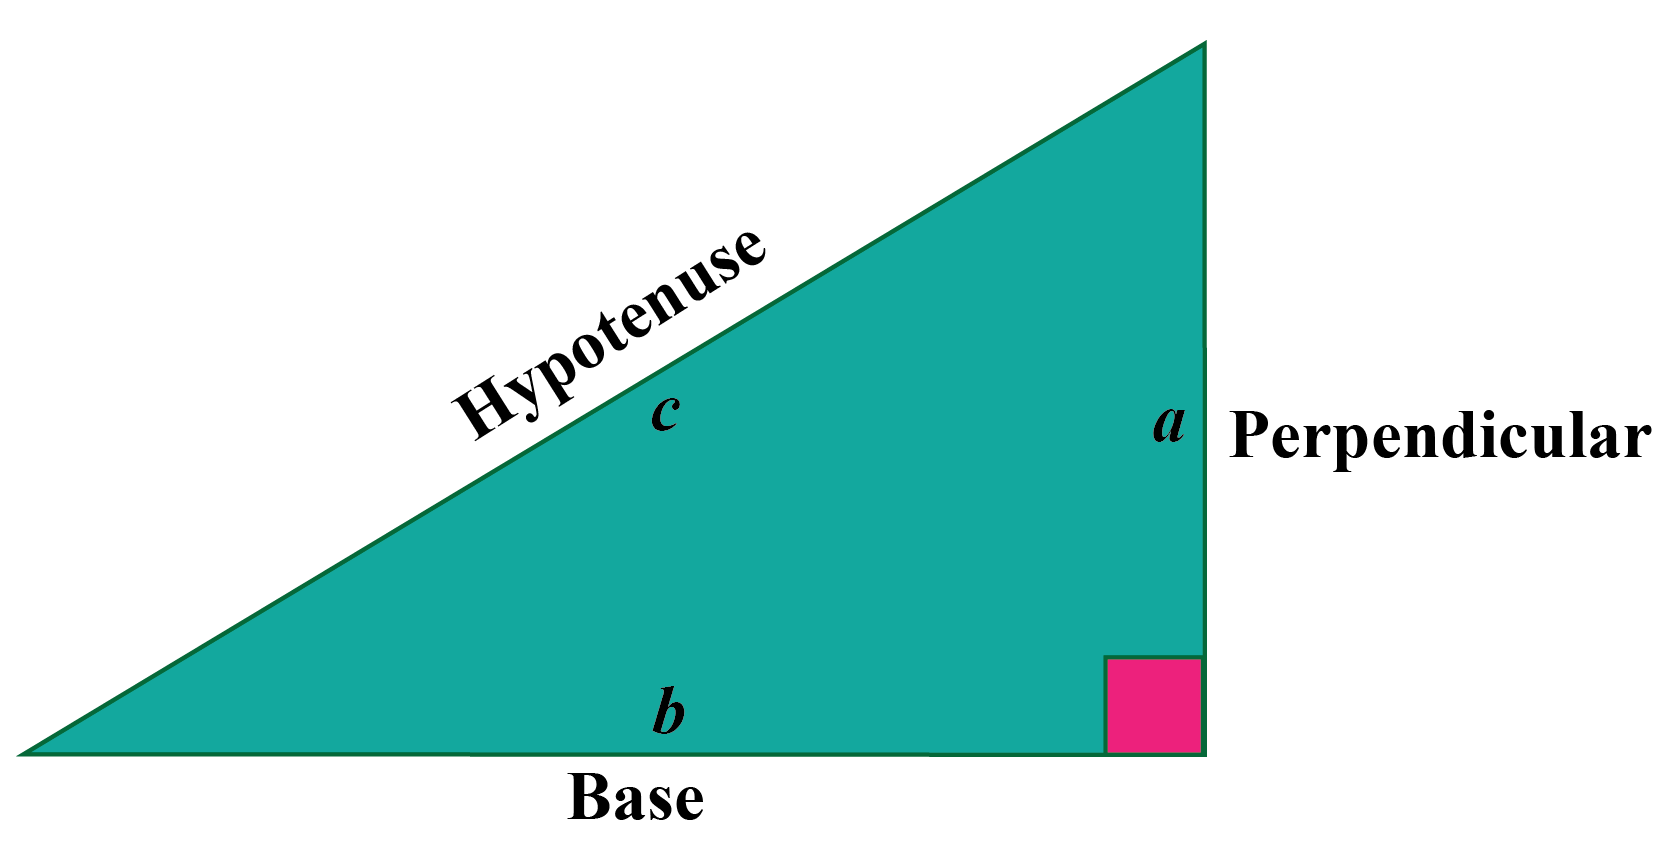 Right angled triangle: Calculation of c